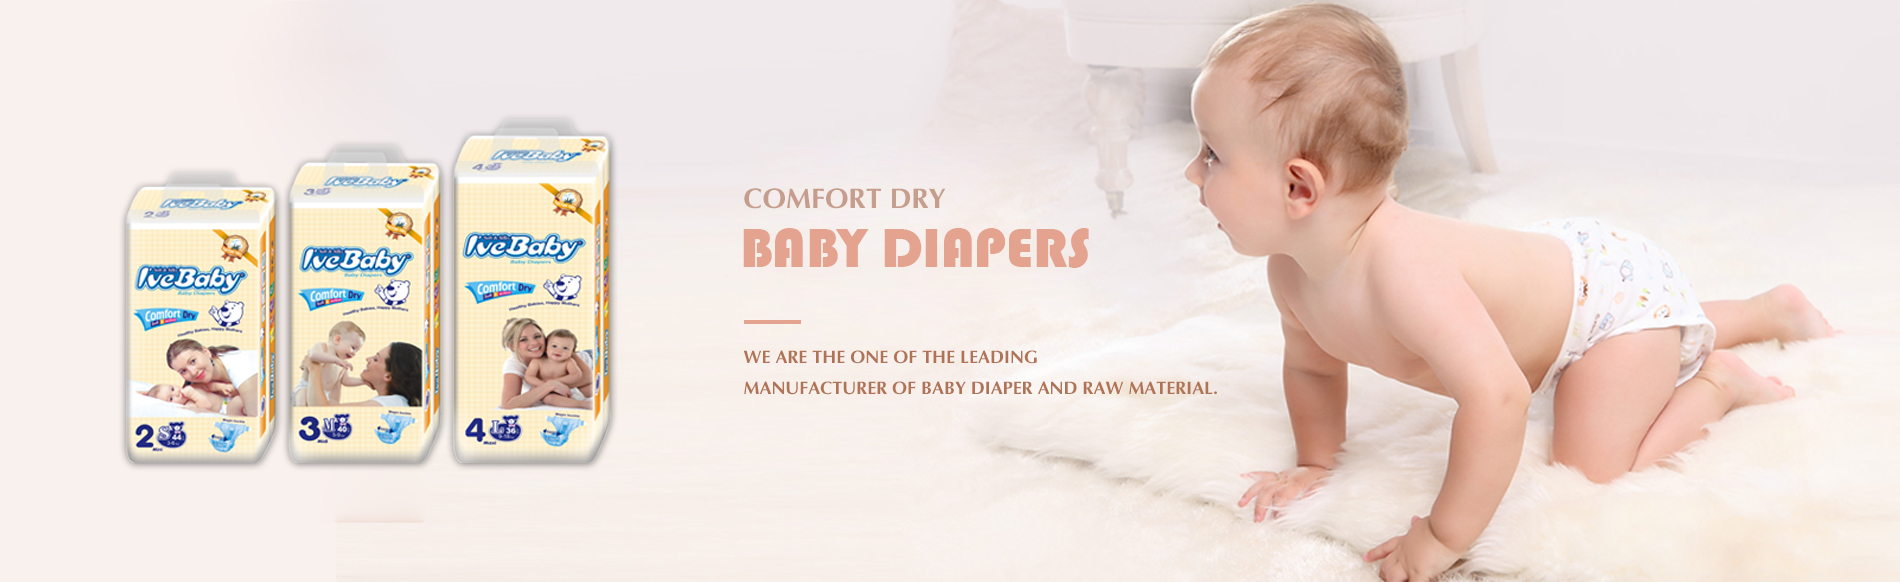 best quality baby diapers-www.ivebaby.com